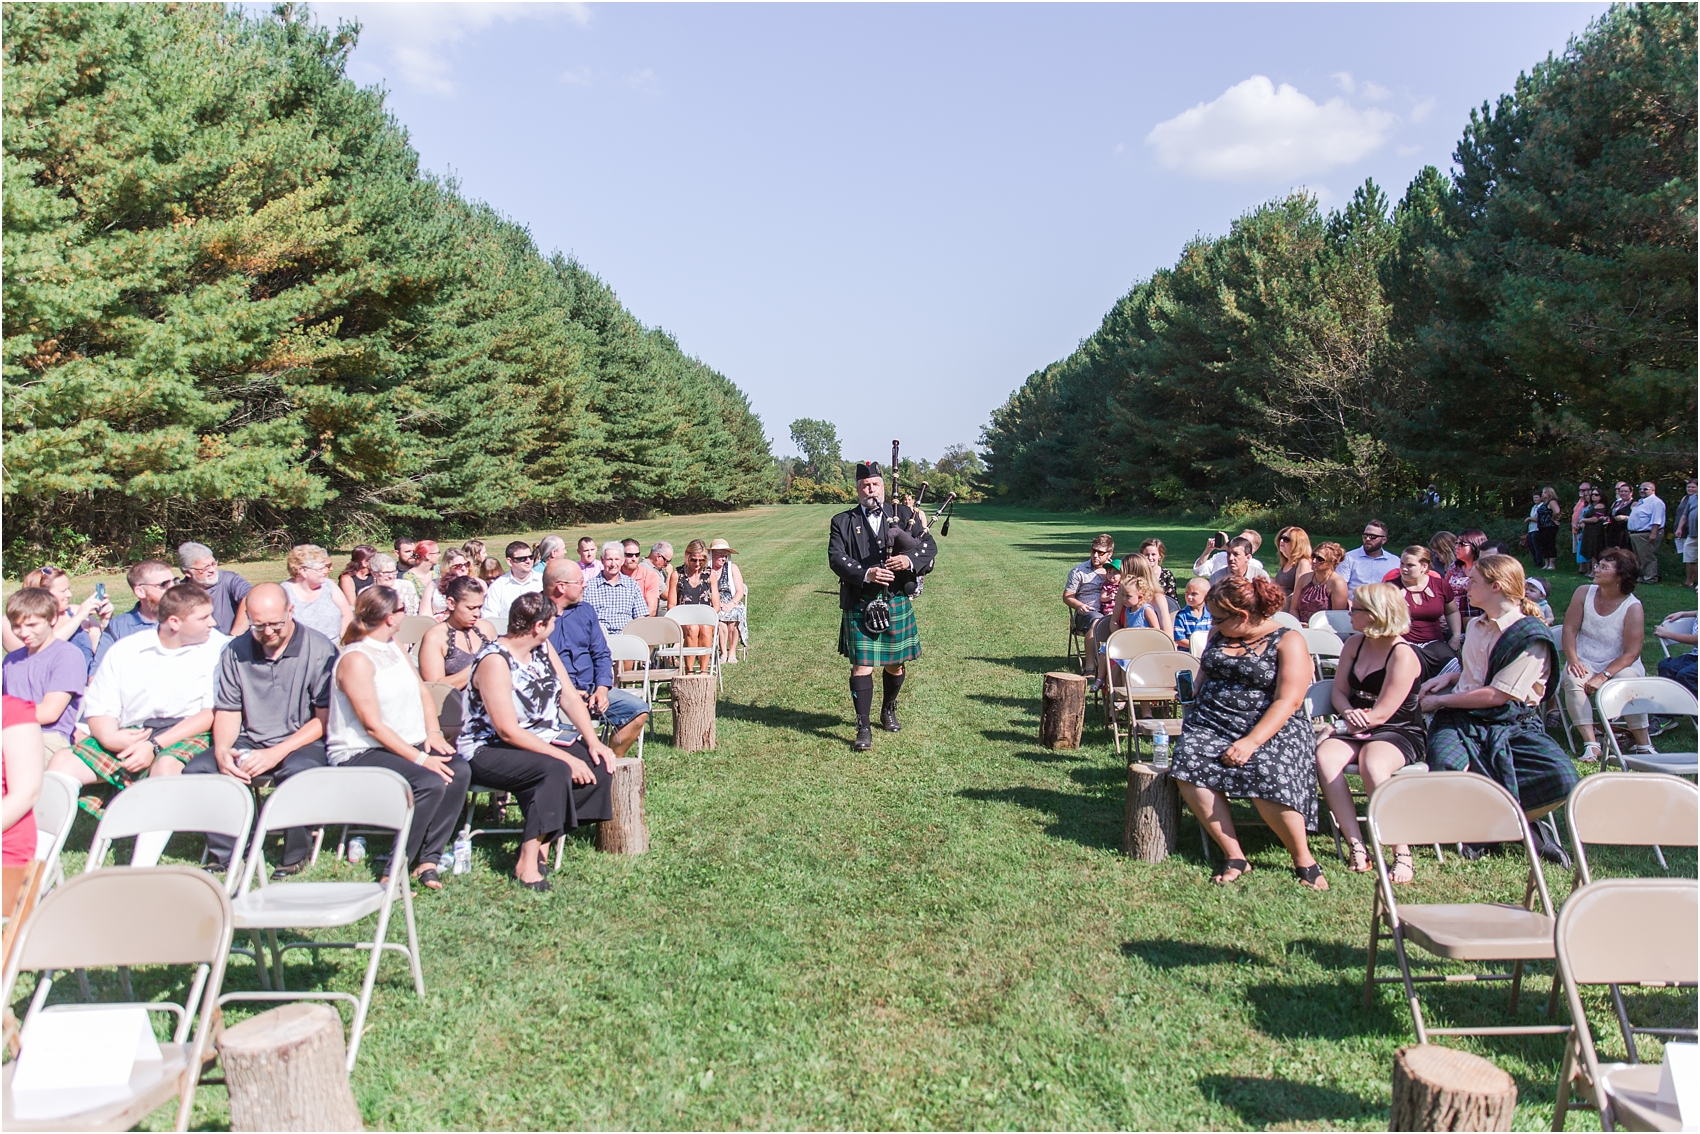 scottish-inspired-wedding-photos-in-the-country-in-port-sanilac-michigan-by-courtney-carolyn-photography_0014.jpg